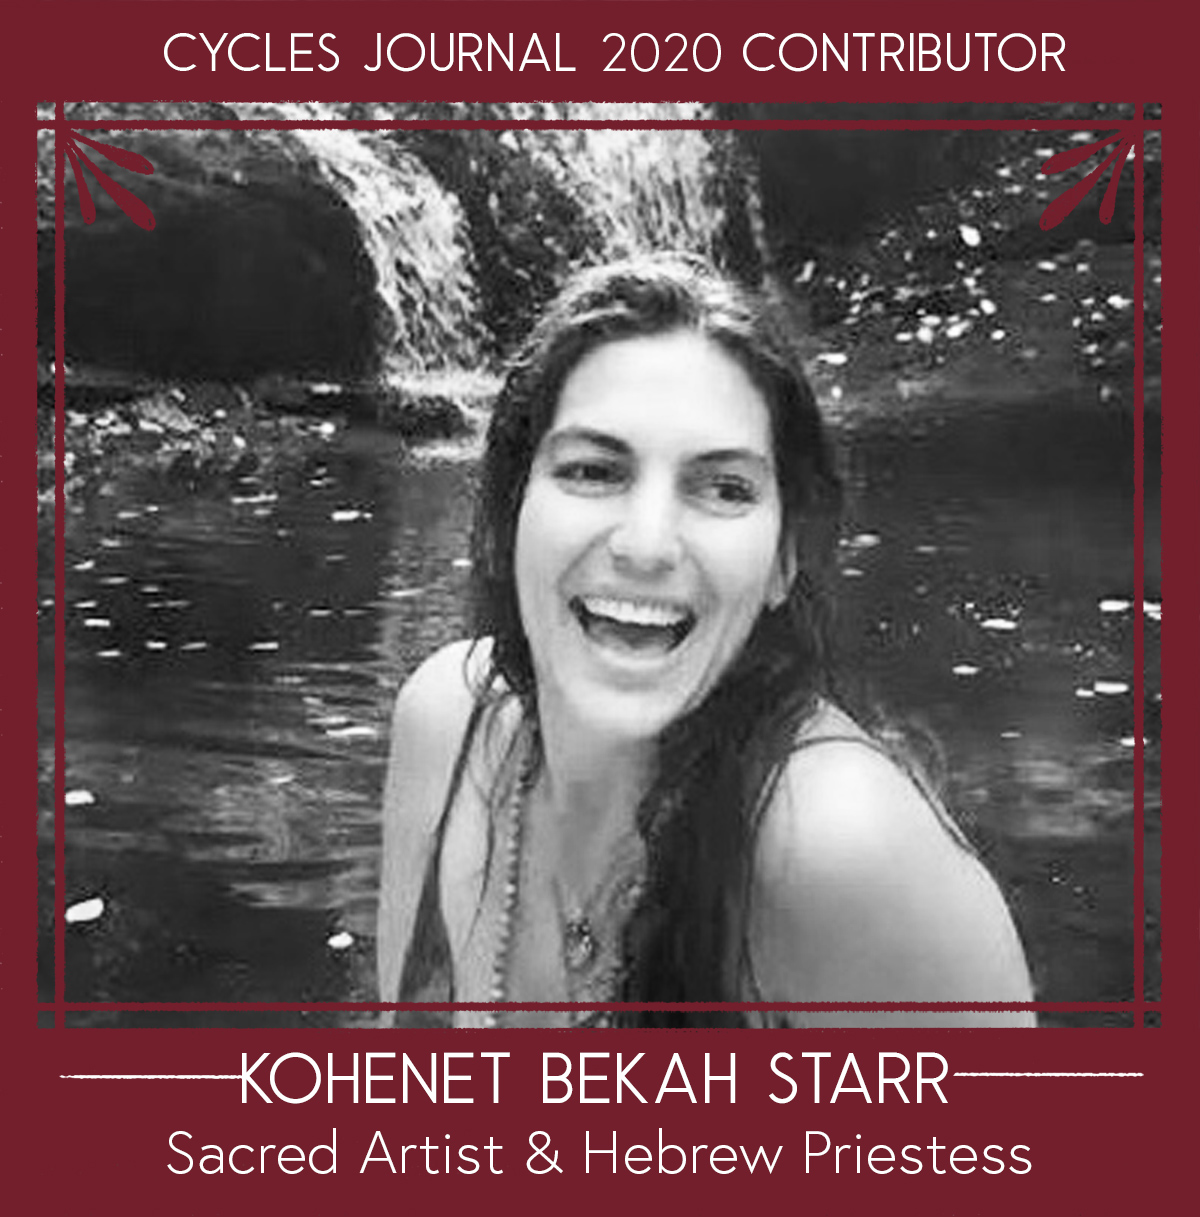 Kohenet Bekah Starr - Sacred Artist & Hebrew PriestessKohenet Bekah Starr is a Sacred Artist exploring connections between Hebrew Mysticism and the Divine Feminine. She is a witness to the sacredness of all that is life, source, and creation.Bekah is an ordained Kohenet (Hebrew Priestess) offering spiritual support through inspirational artwork and embodied ritual. Her artwork, workshops, and writing have been featured around the world. She lives with her amazingly supportive husband and their two inspiring children on the lands of the Wappinger First Nation people, also known as the beautiful Hudson Valley of New York.Social: @bekahstarrartWebsite: www.BekahStarrArt.com Email: bekahstarr (@) gmail.com